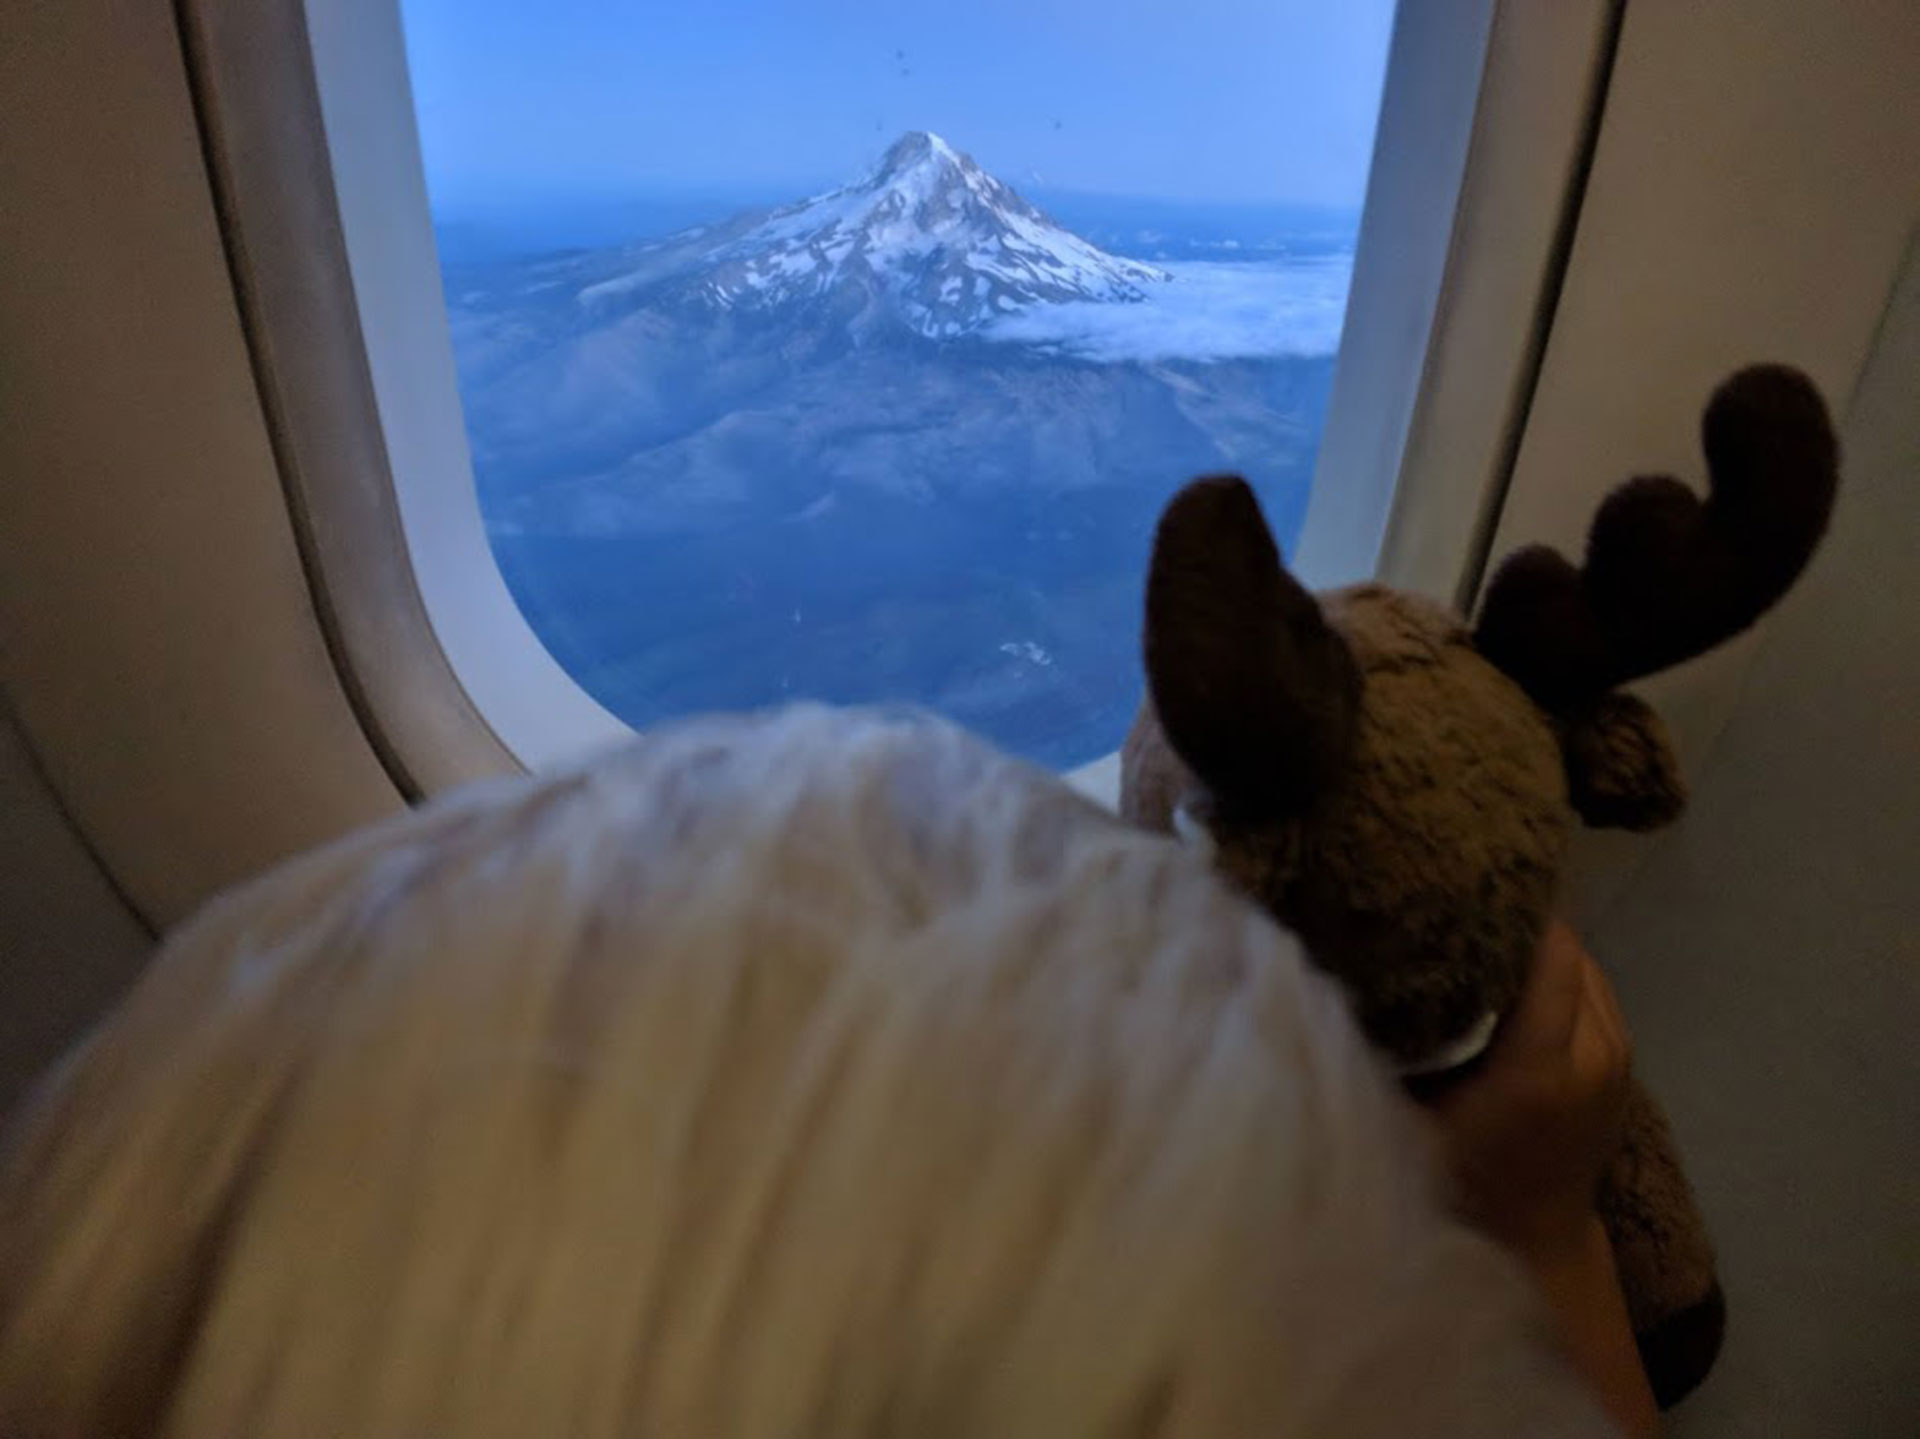 Child looking out airplane window at mountain